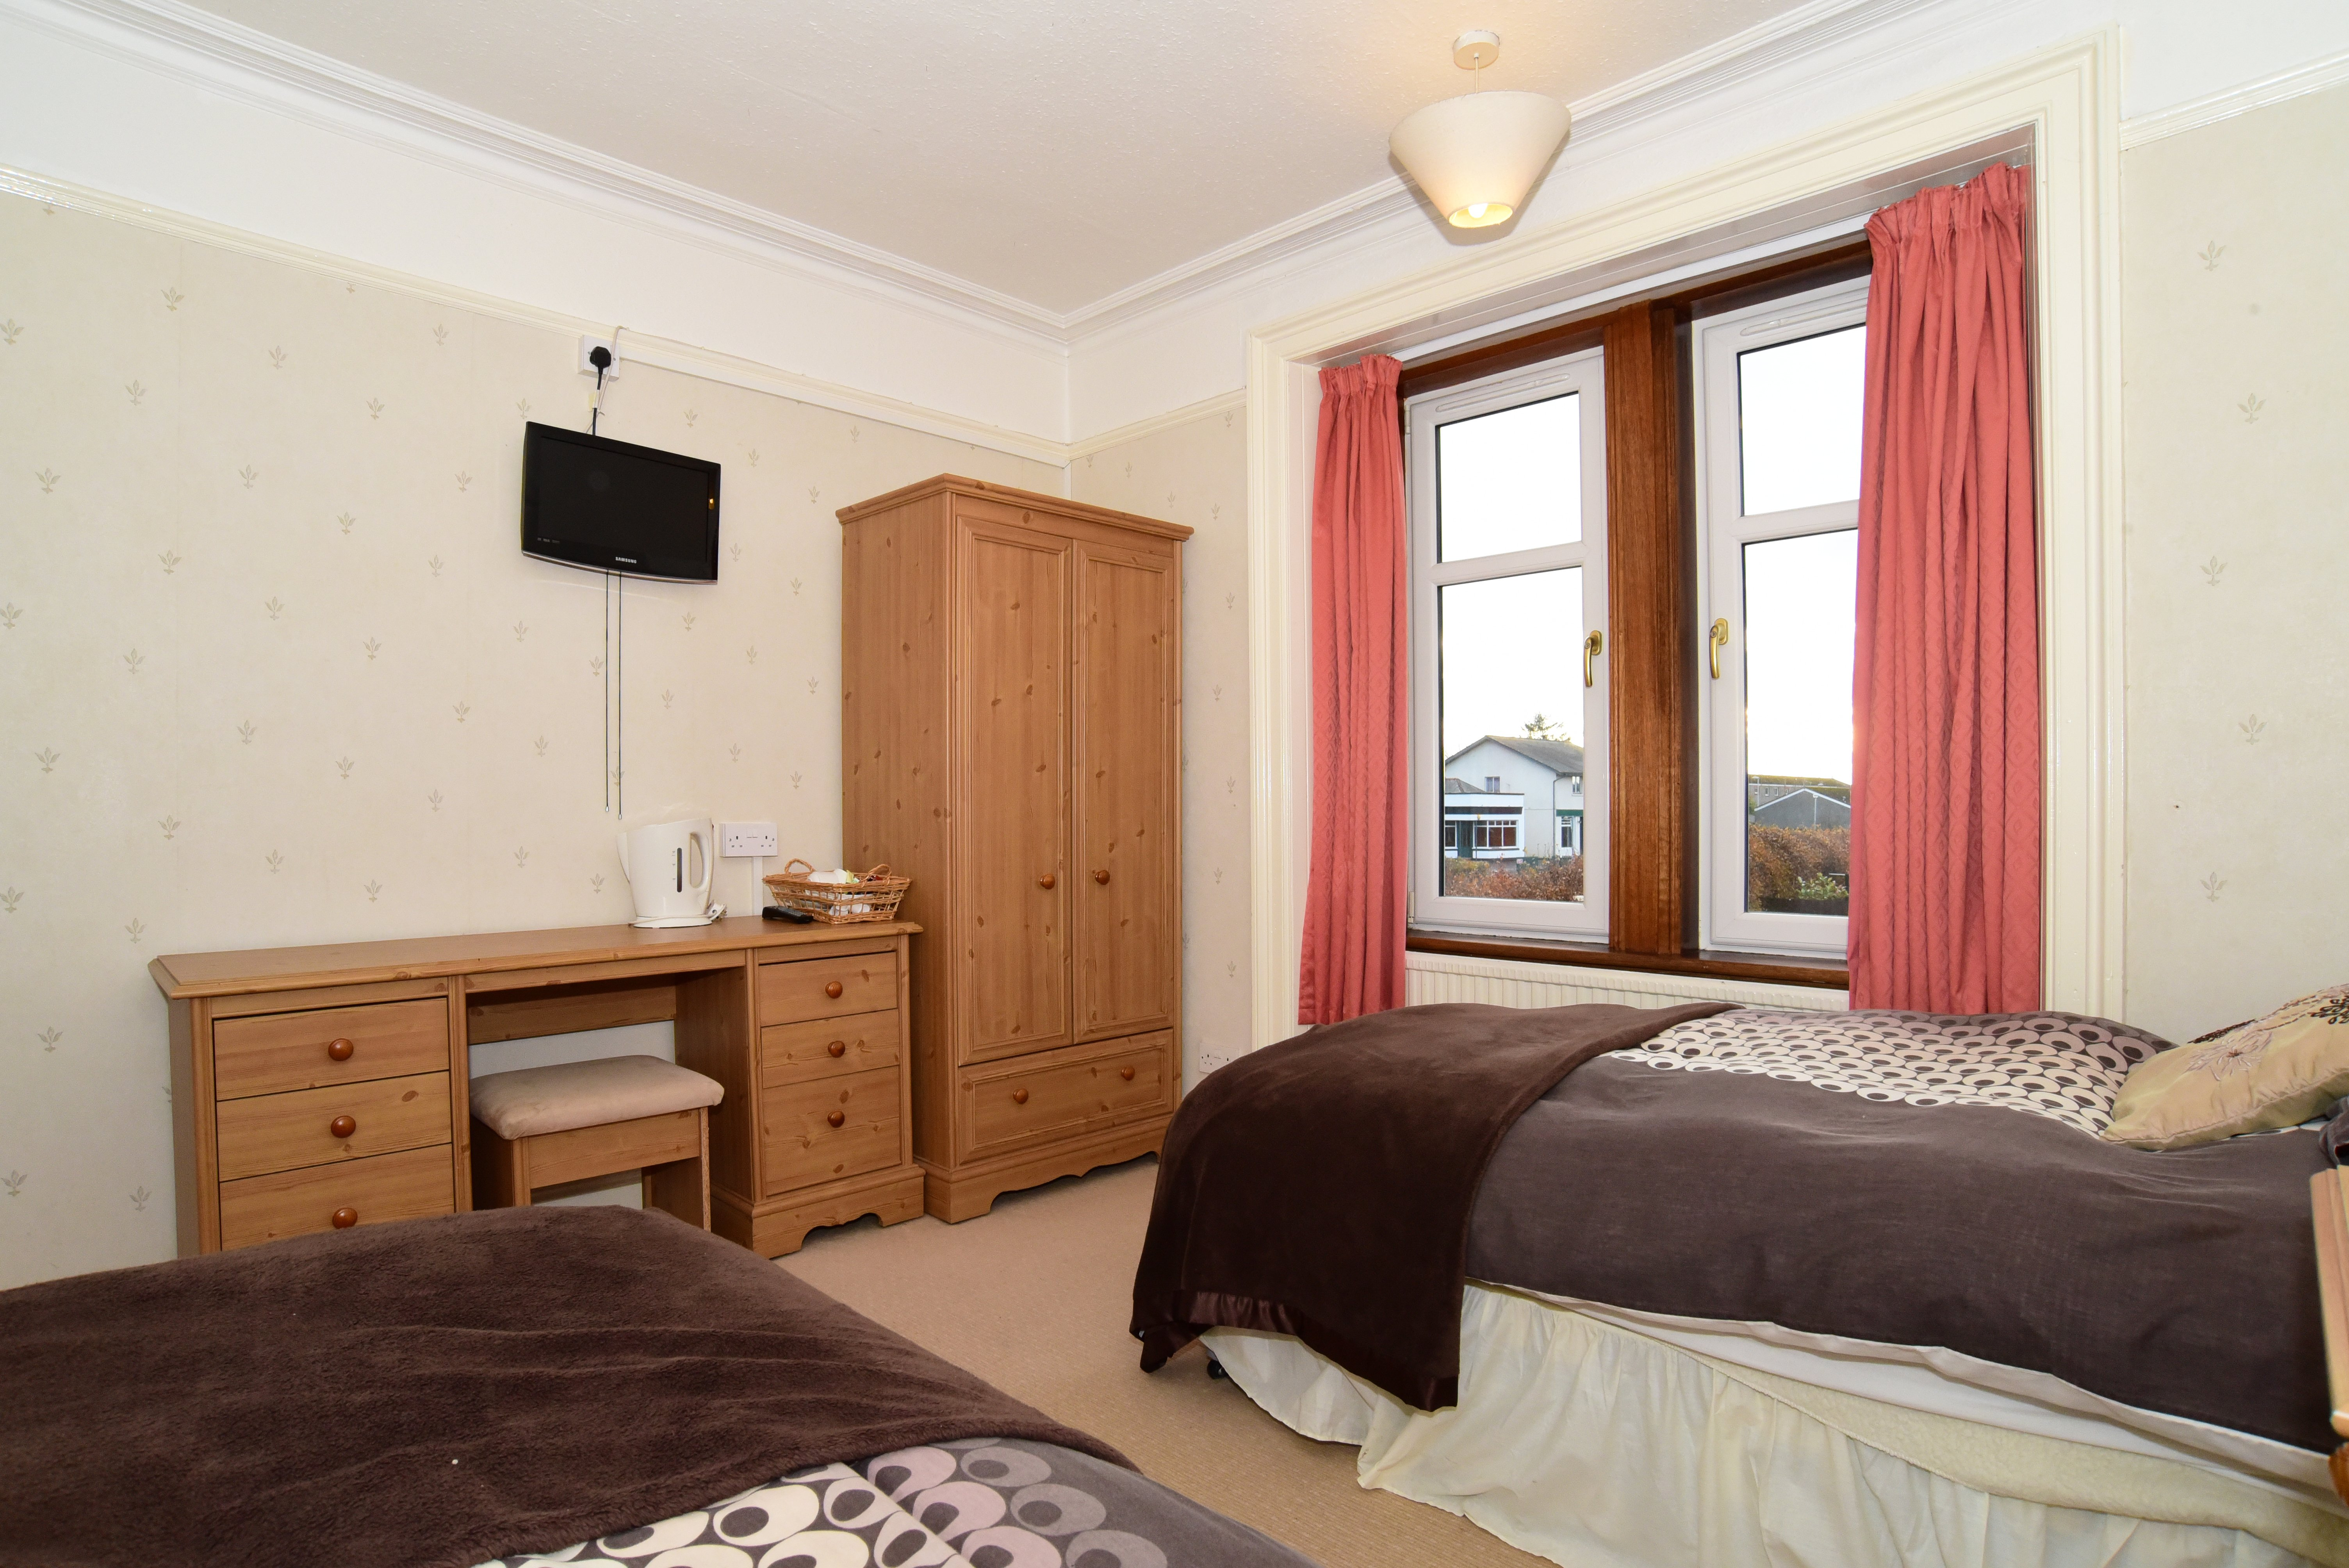 single beds accommodation options